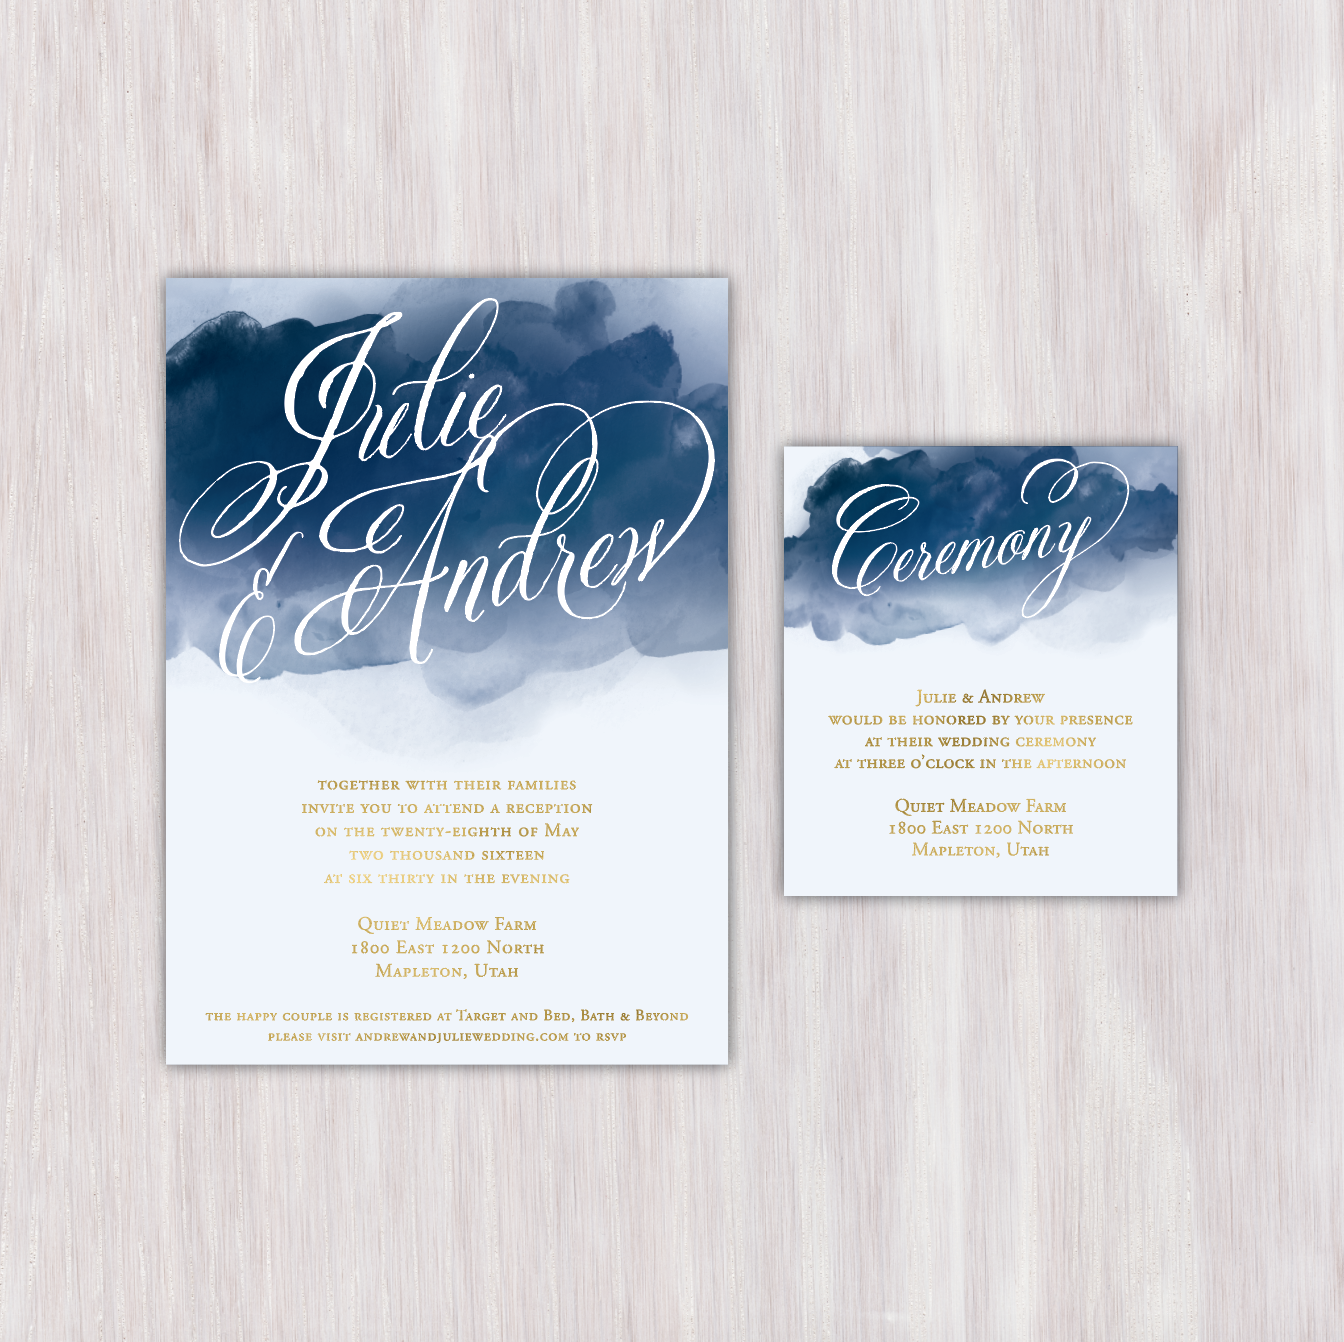 Navy watercolor gold text single sided wedding announcement with